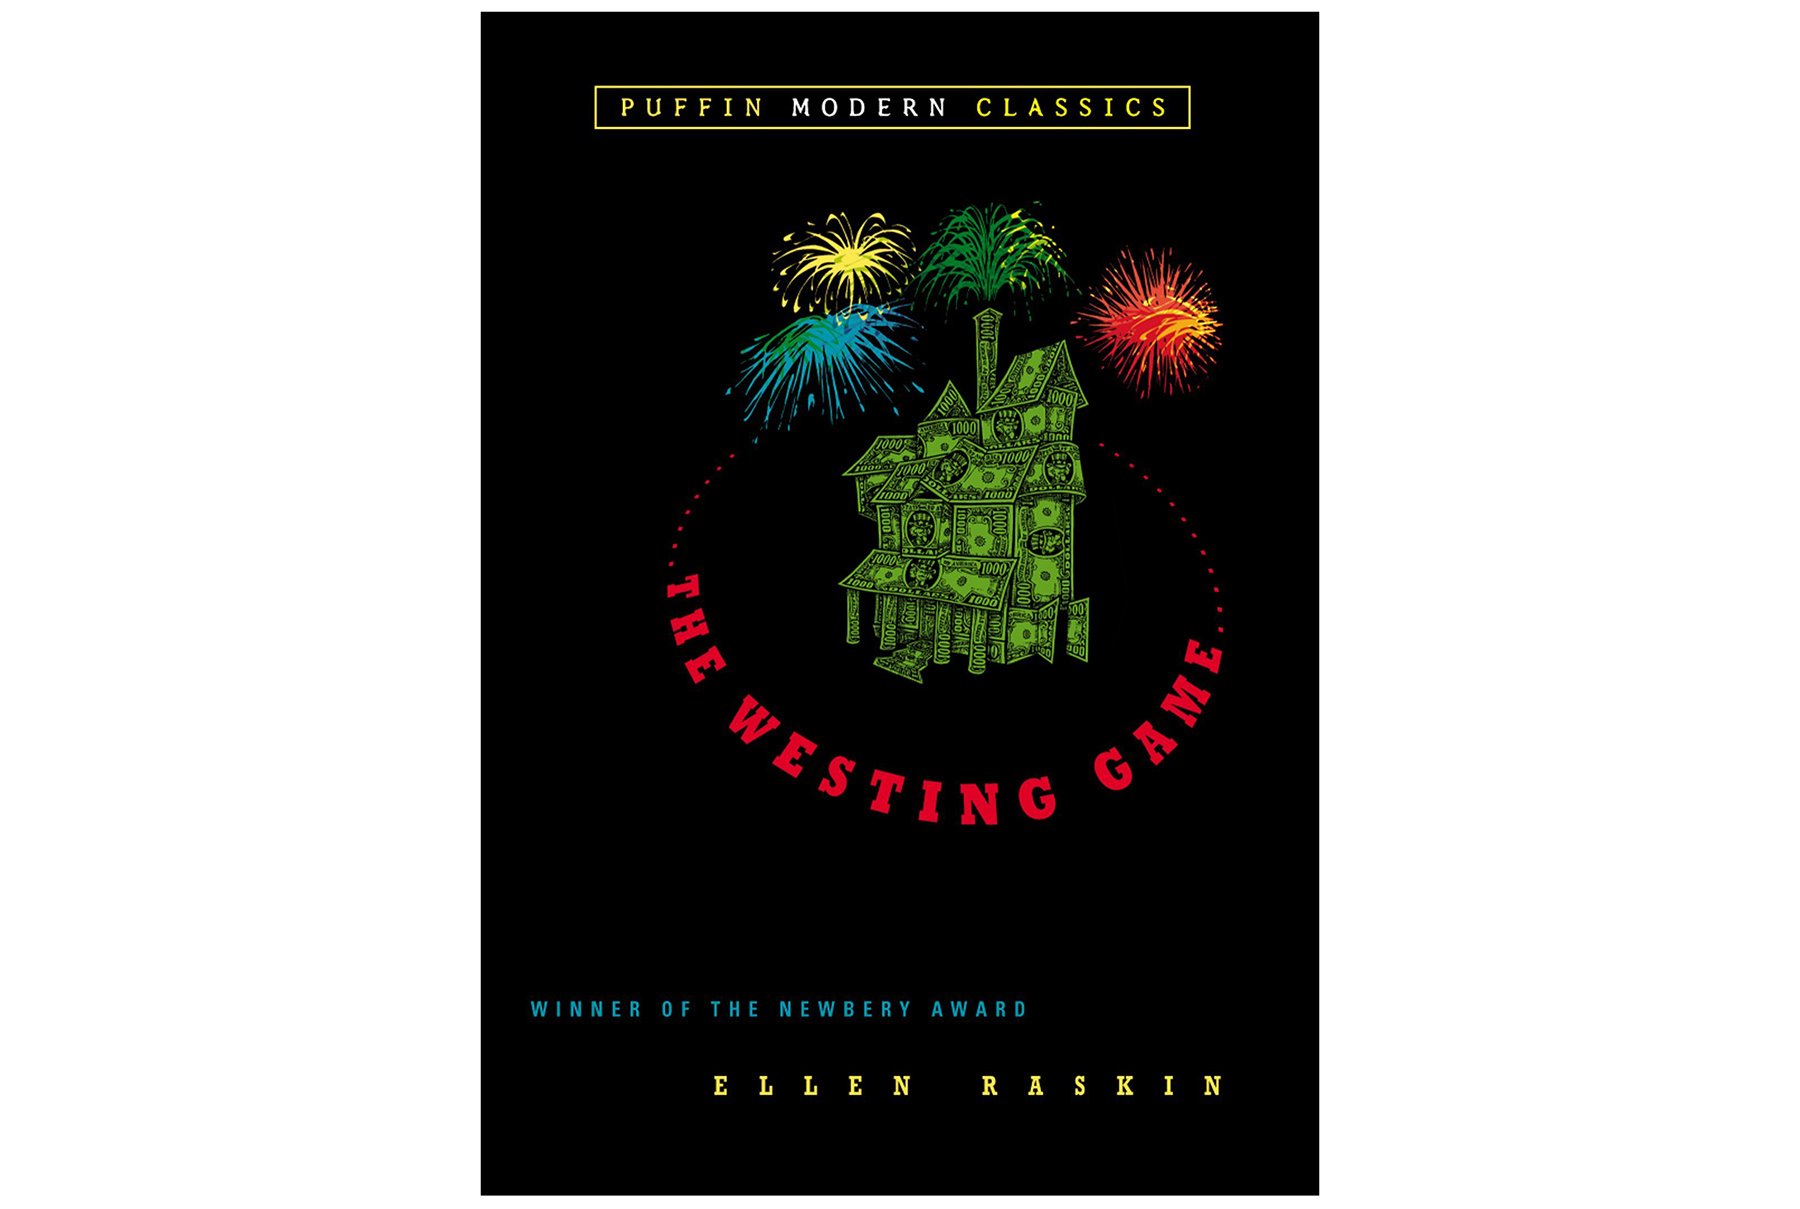 The Westing Game, by Ellen Raskin